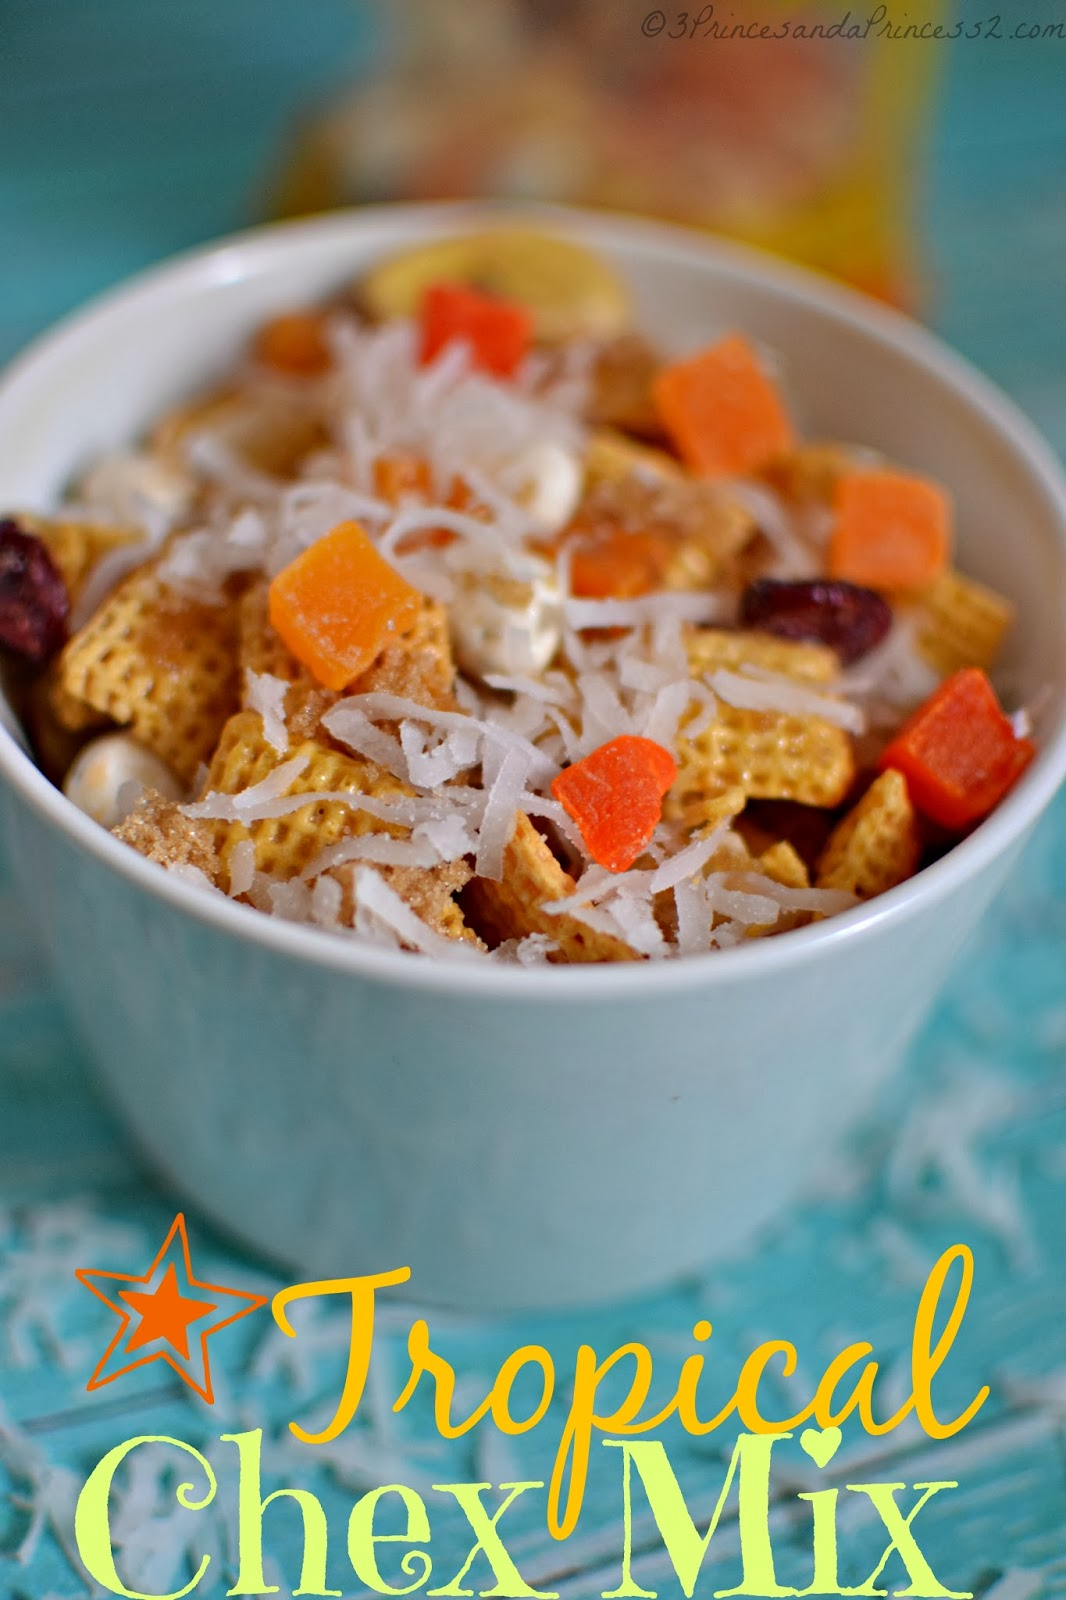 Simple Snacks fFor The Big Game:  Tropical Chex Mix #Recipe #SB48